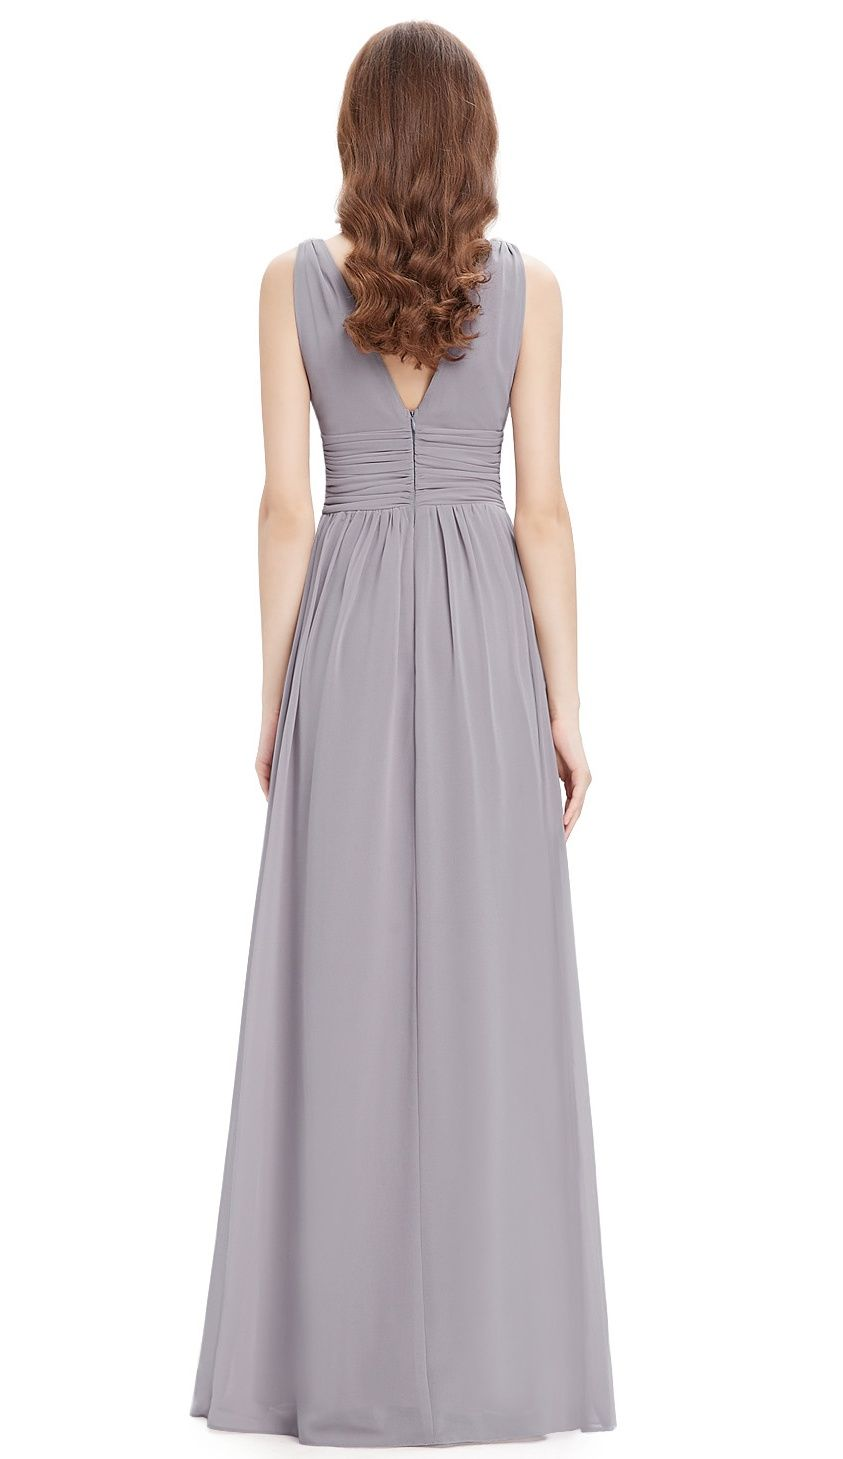 Clothing In 2020 Maxi Bridesmaid Dresses Party Dresses For